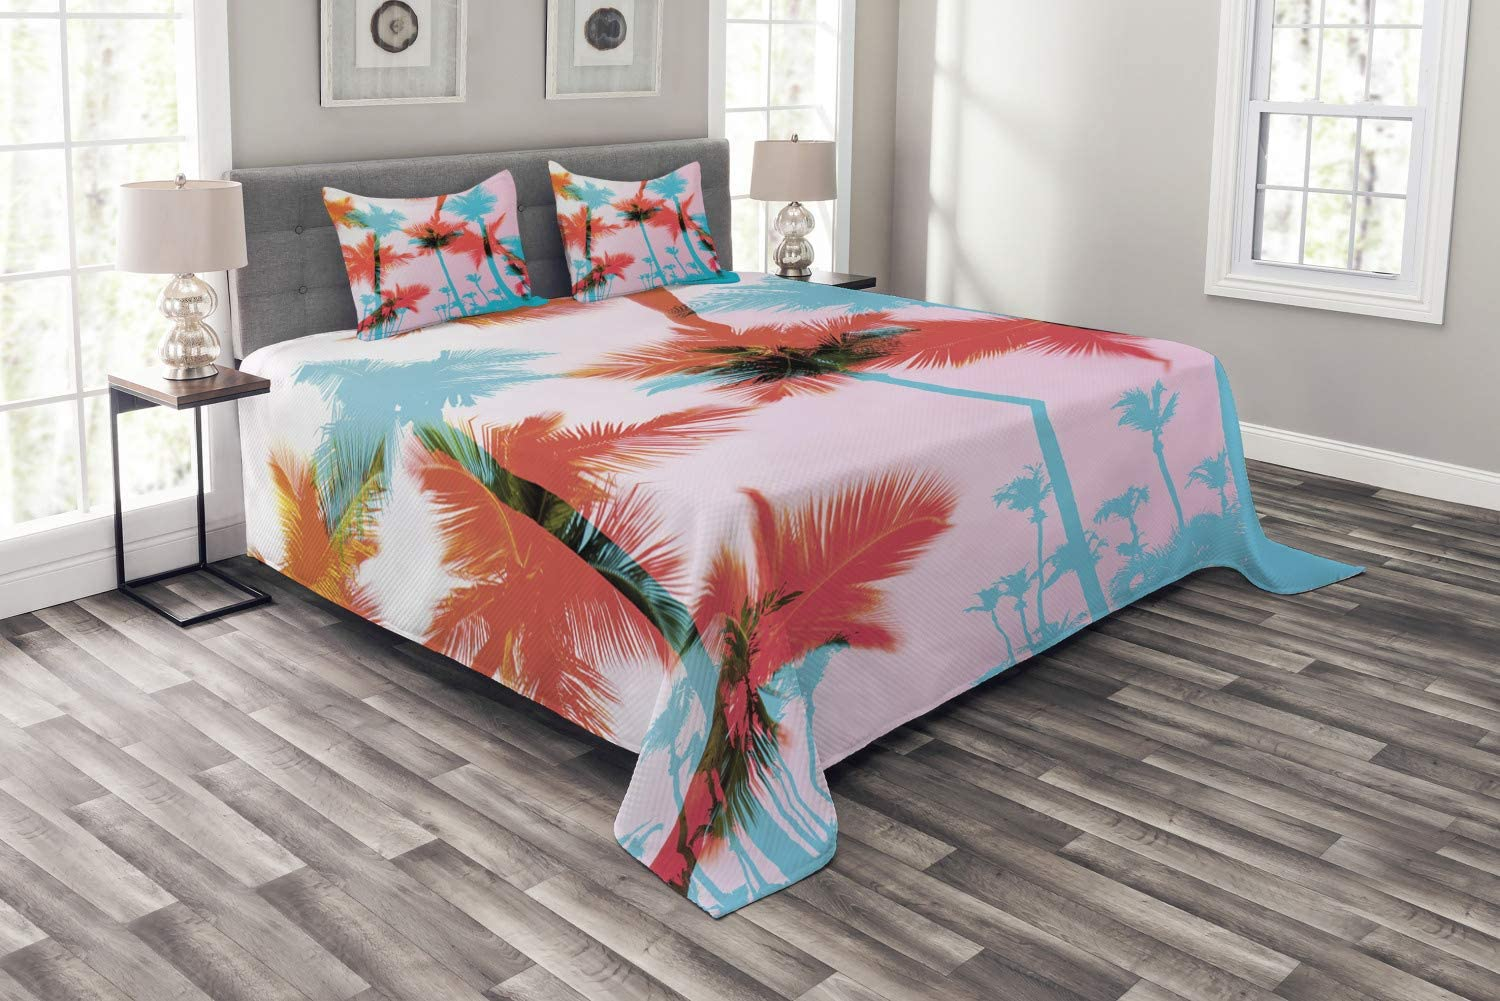 Ambesonne Tropical Bedspread, Coconut Palm Tree Silhouettes Exotic Island Summer Beach Art, Decorative Quilted 3 Piece Coverlet Set with 2 Pillow Shams, Queen Size, Dark Coral